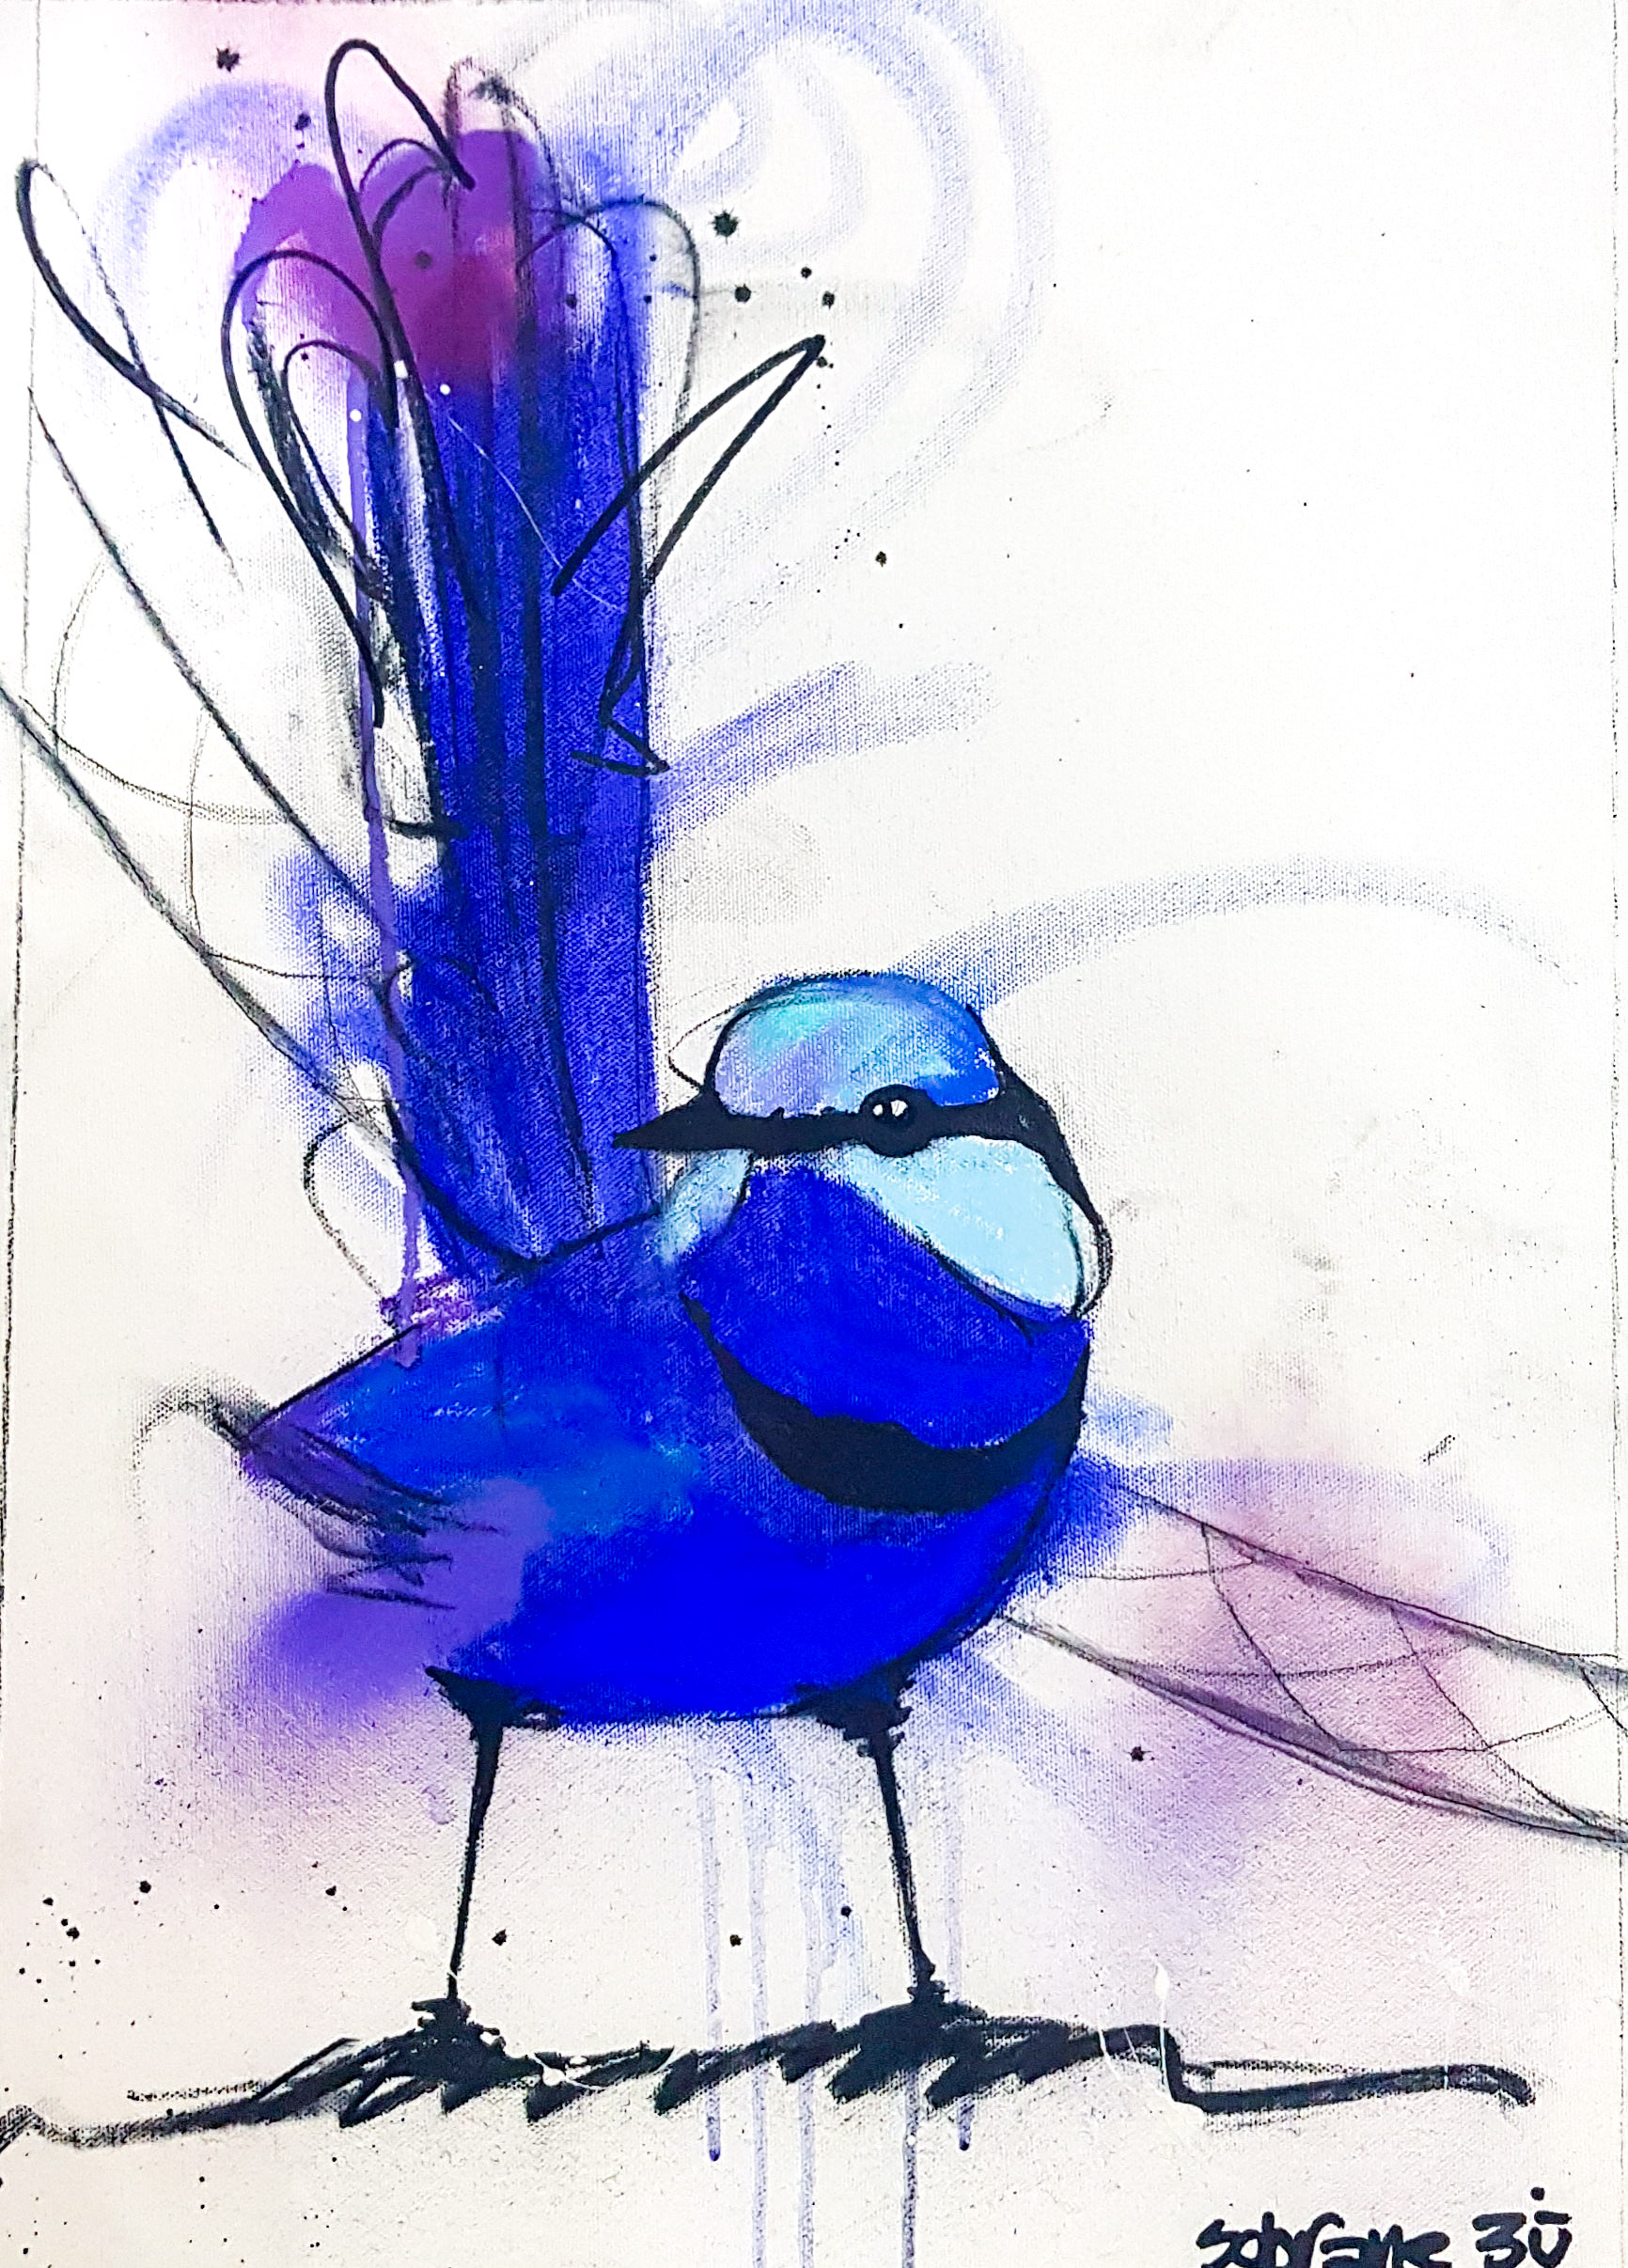 Splendid Blue Wren II Original Original artwork completed in Pastels, spray-paint, charcoal and enamel.  Artwork is on canvas 53 x 38 cm FREE SHIPPING ON ALL ORIGINALS WORLDWIDE